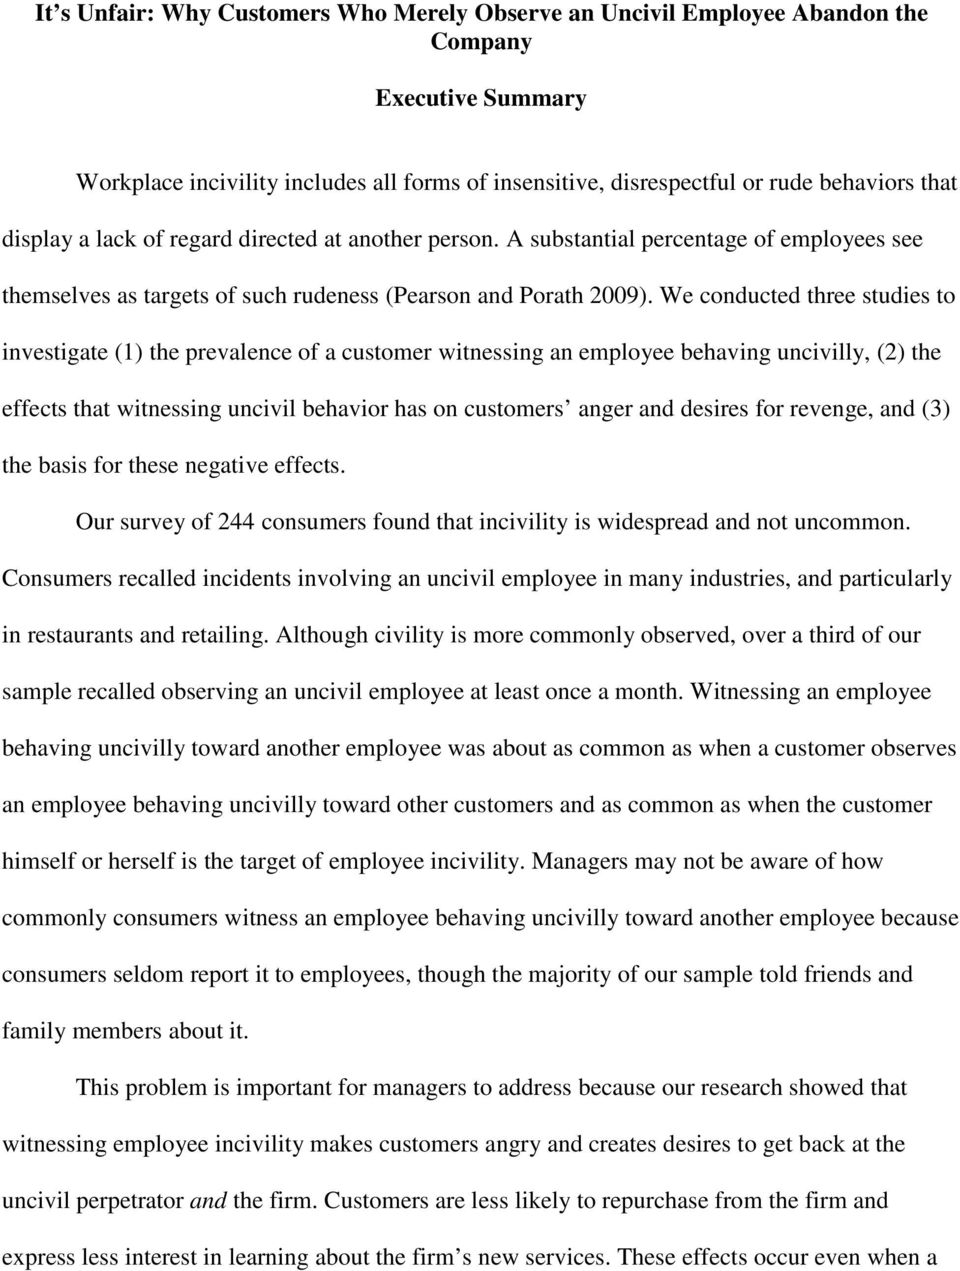 We conducted three studies to investigate (1) the prevalence of a customer witnessing an employee behaving uncivilly, (2) the effects that witnessing uncivil behavior has on customers anger and